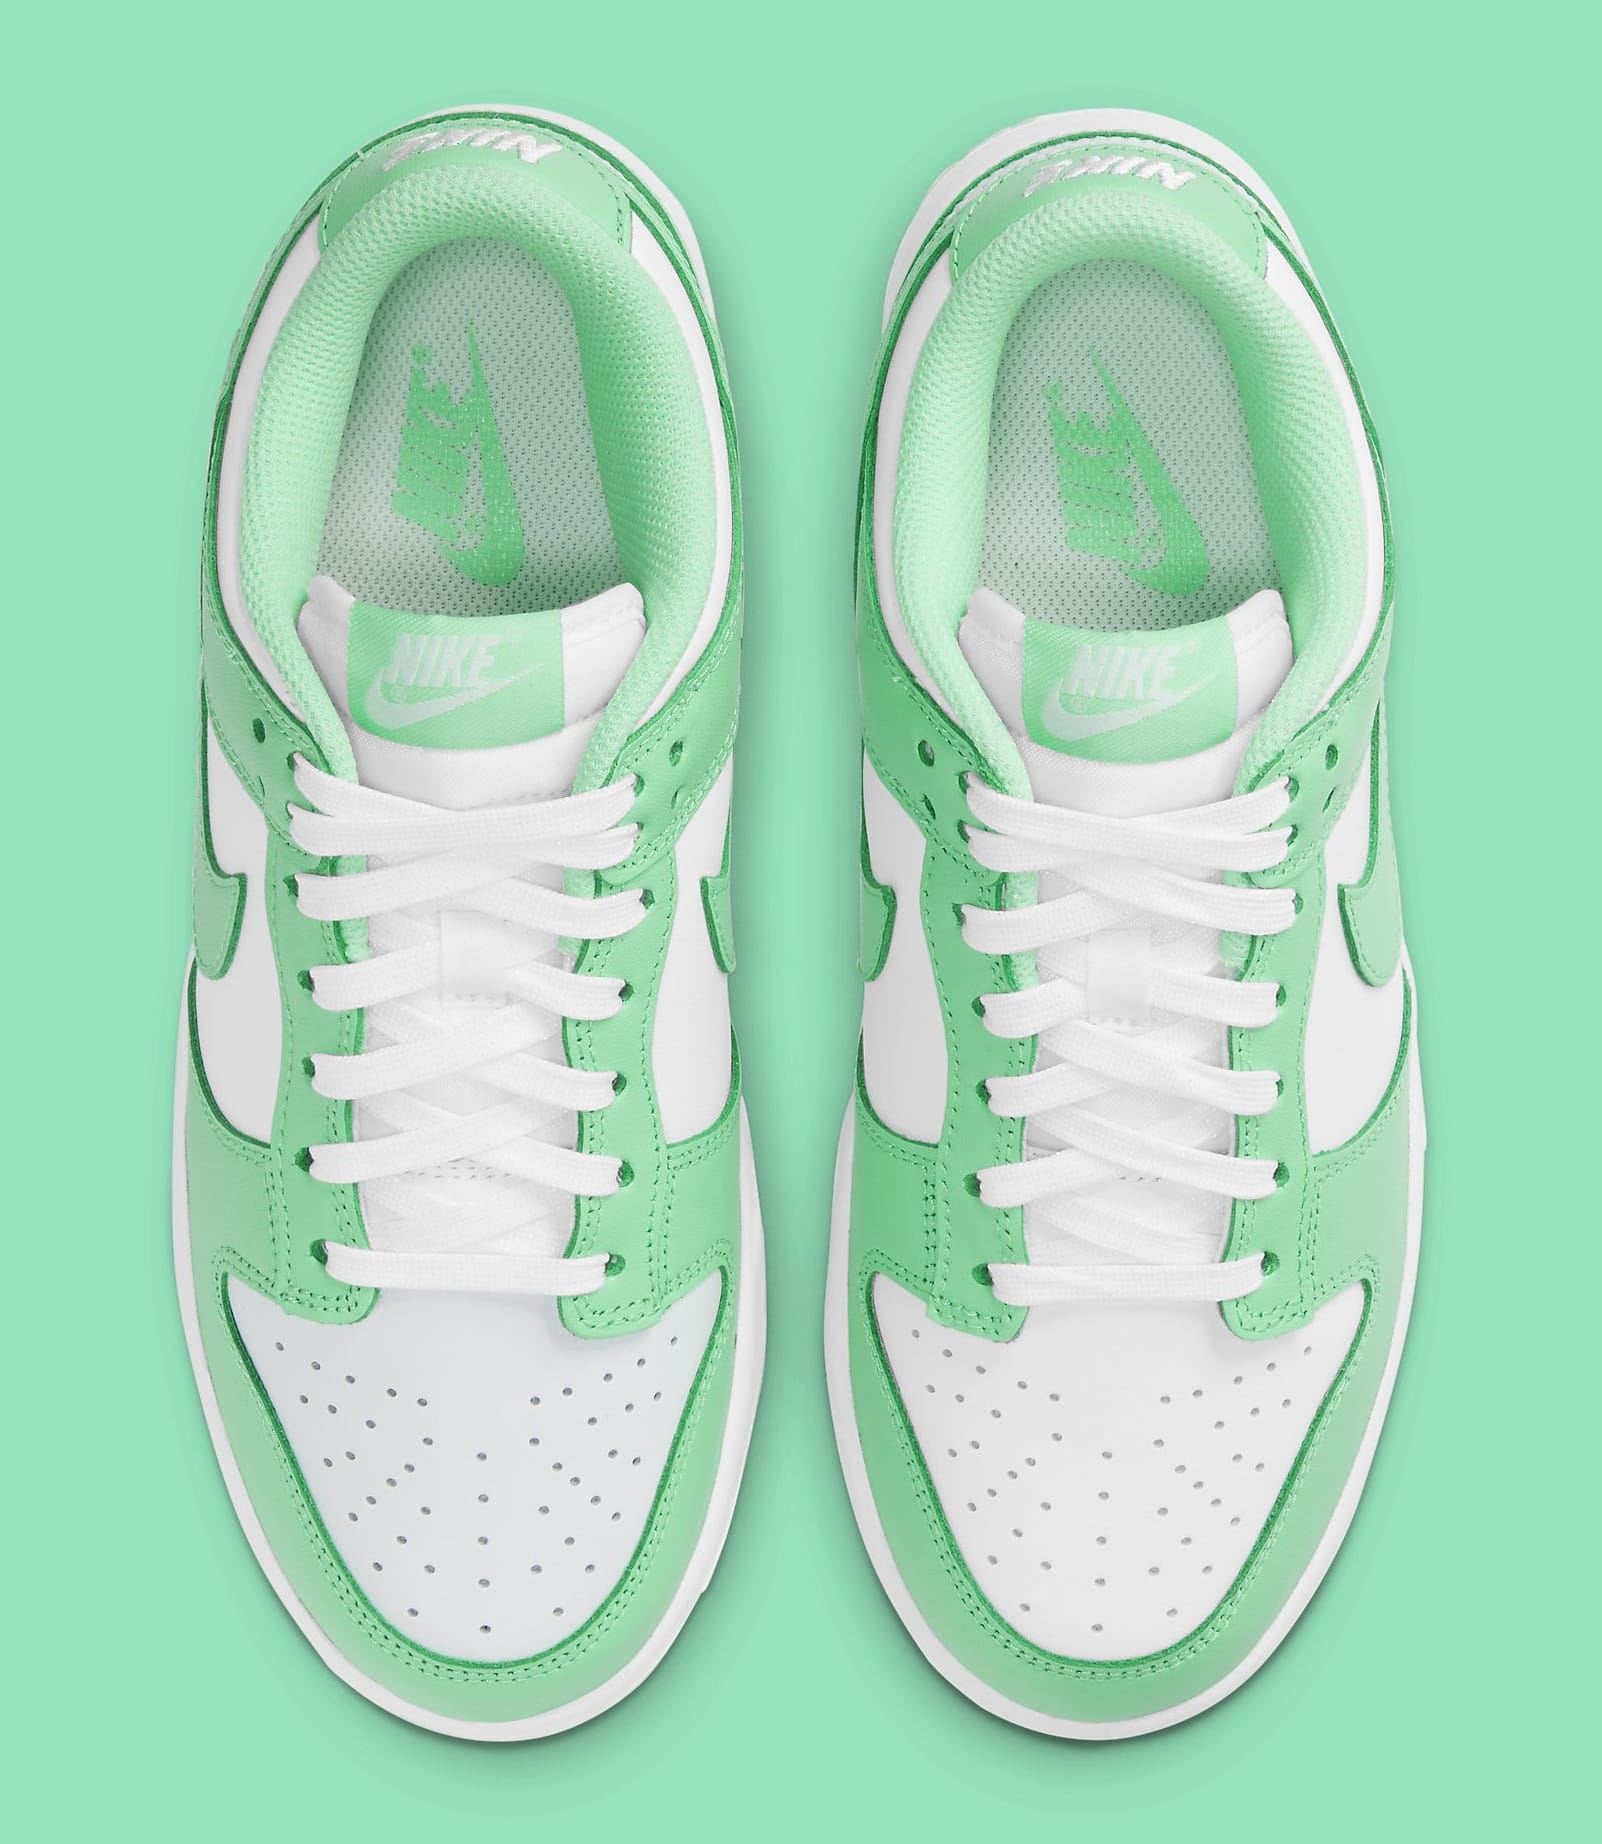 Nike Dunk Low Women's 'Green Glow' DD1503-105 Top